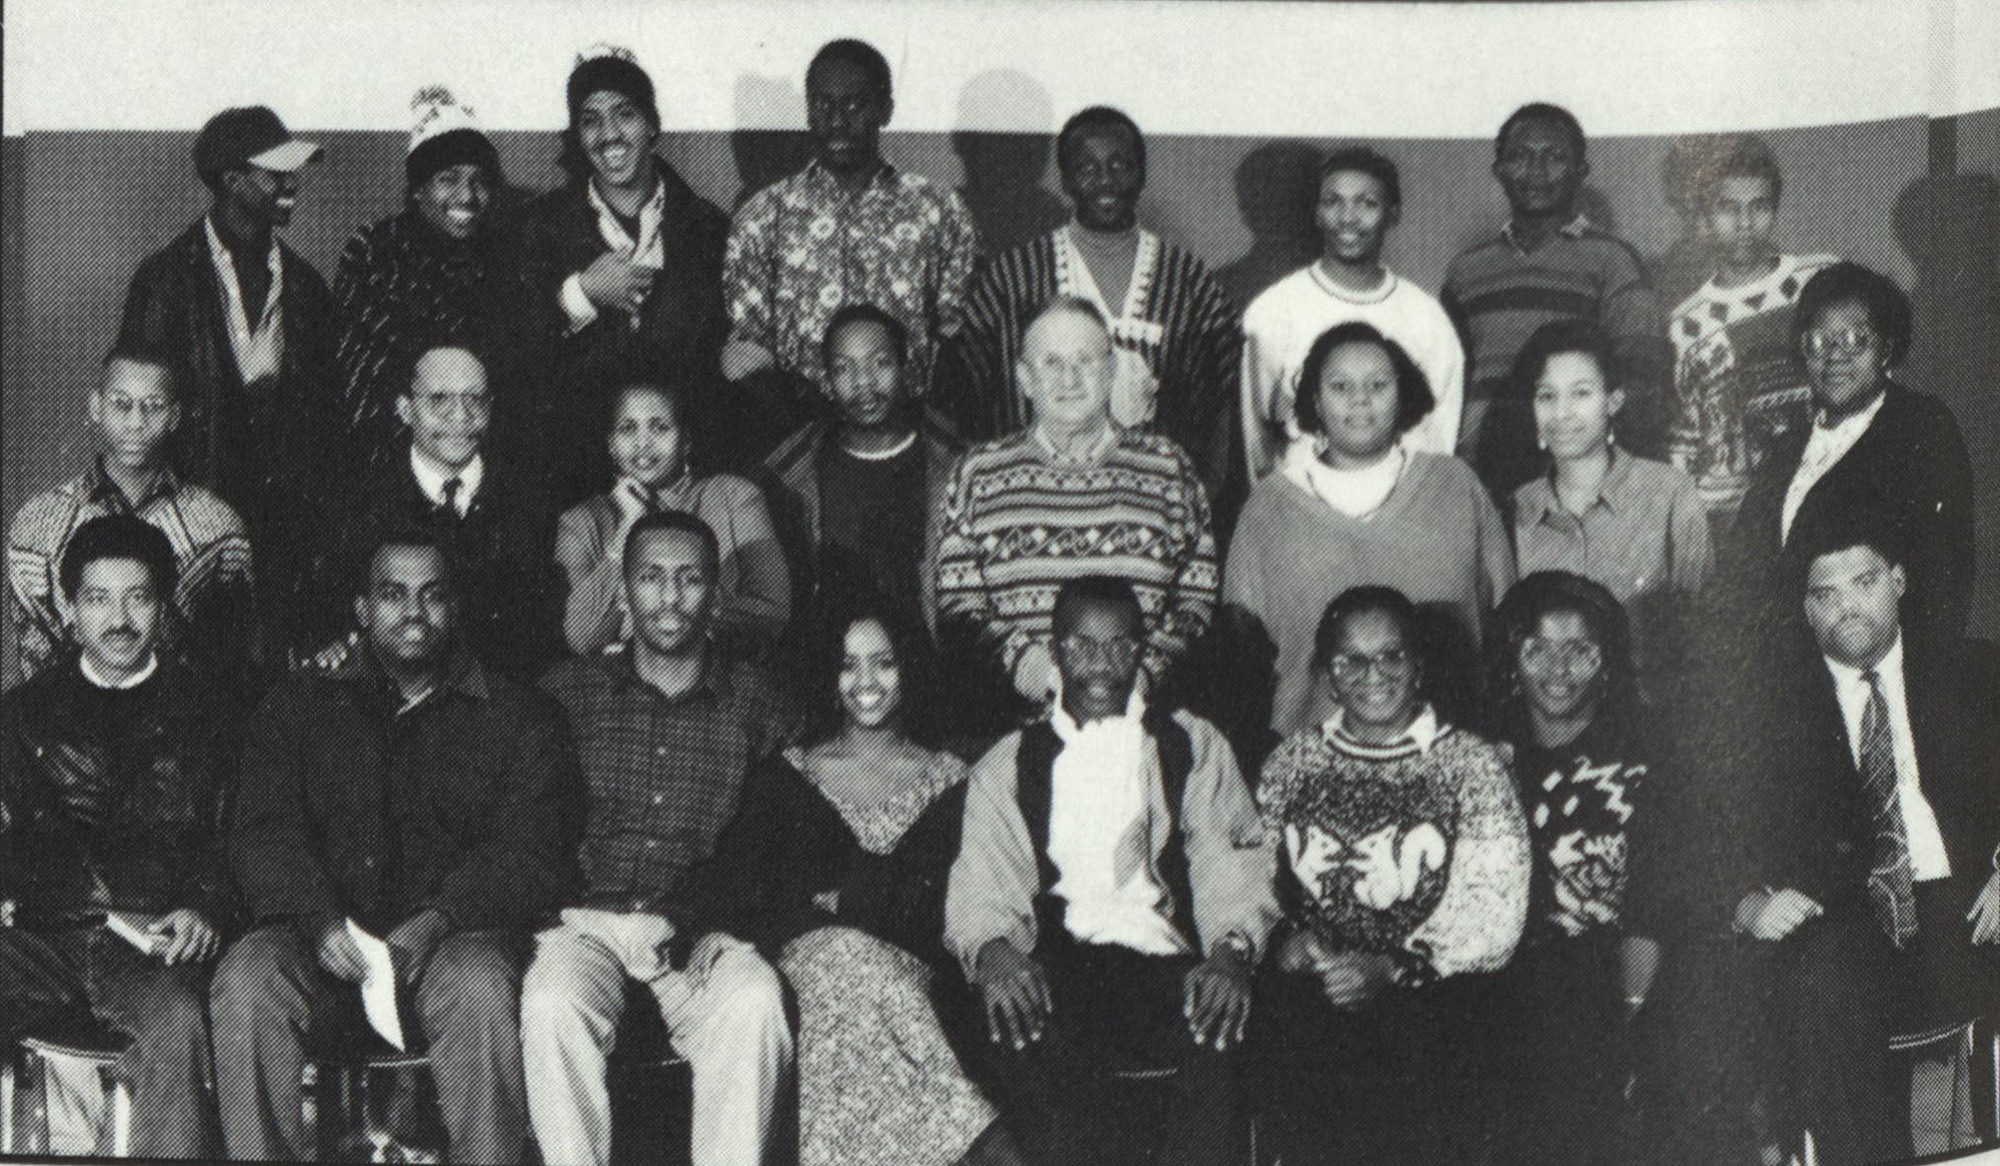 http://spec.lib.vt.edu/pickup/Omeka_upload/AfricanStudentAssociation_1994.jpg